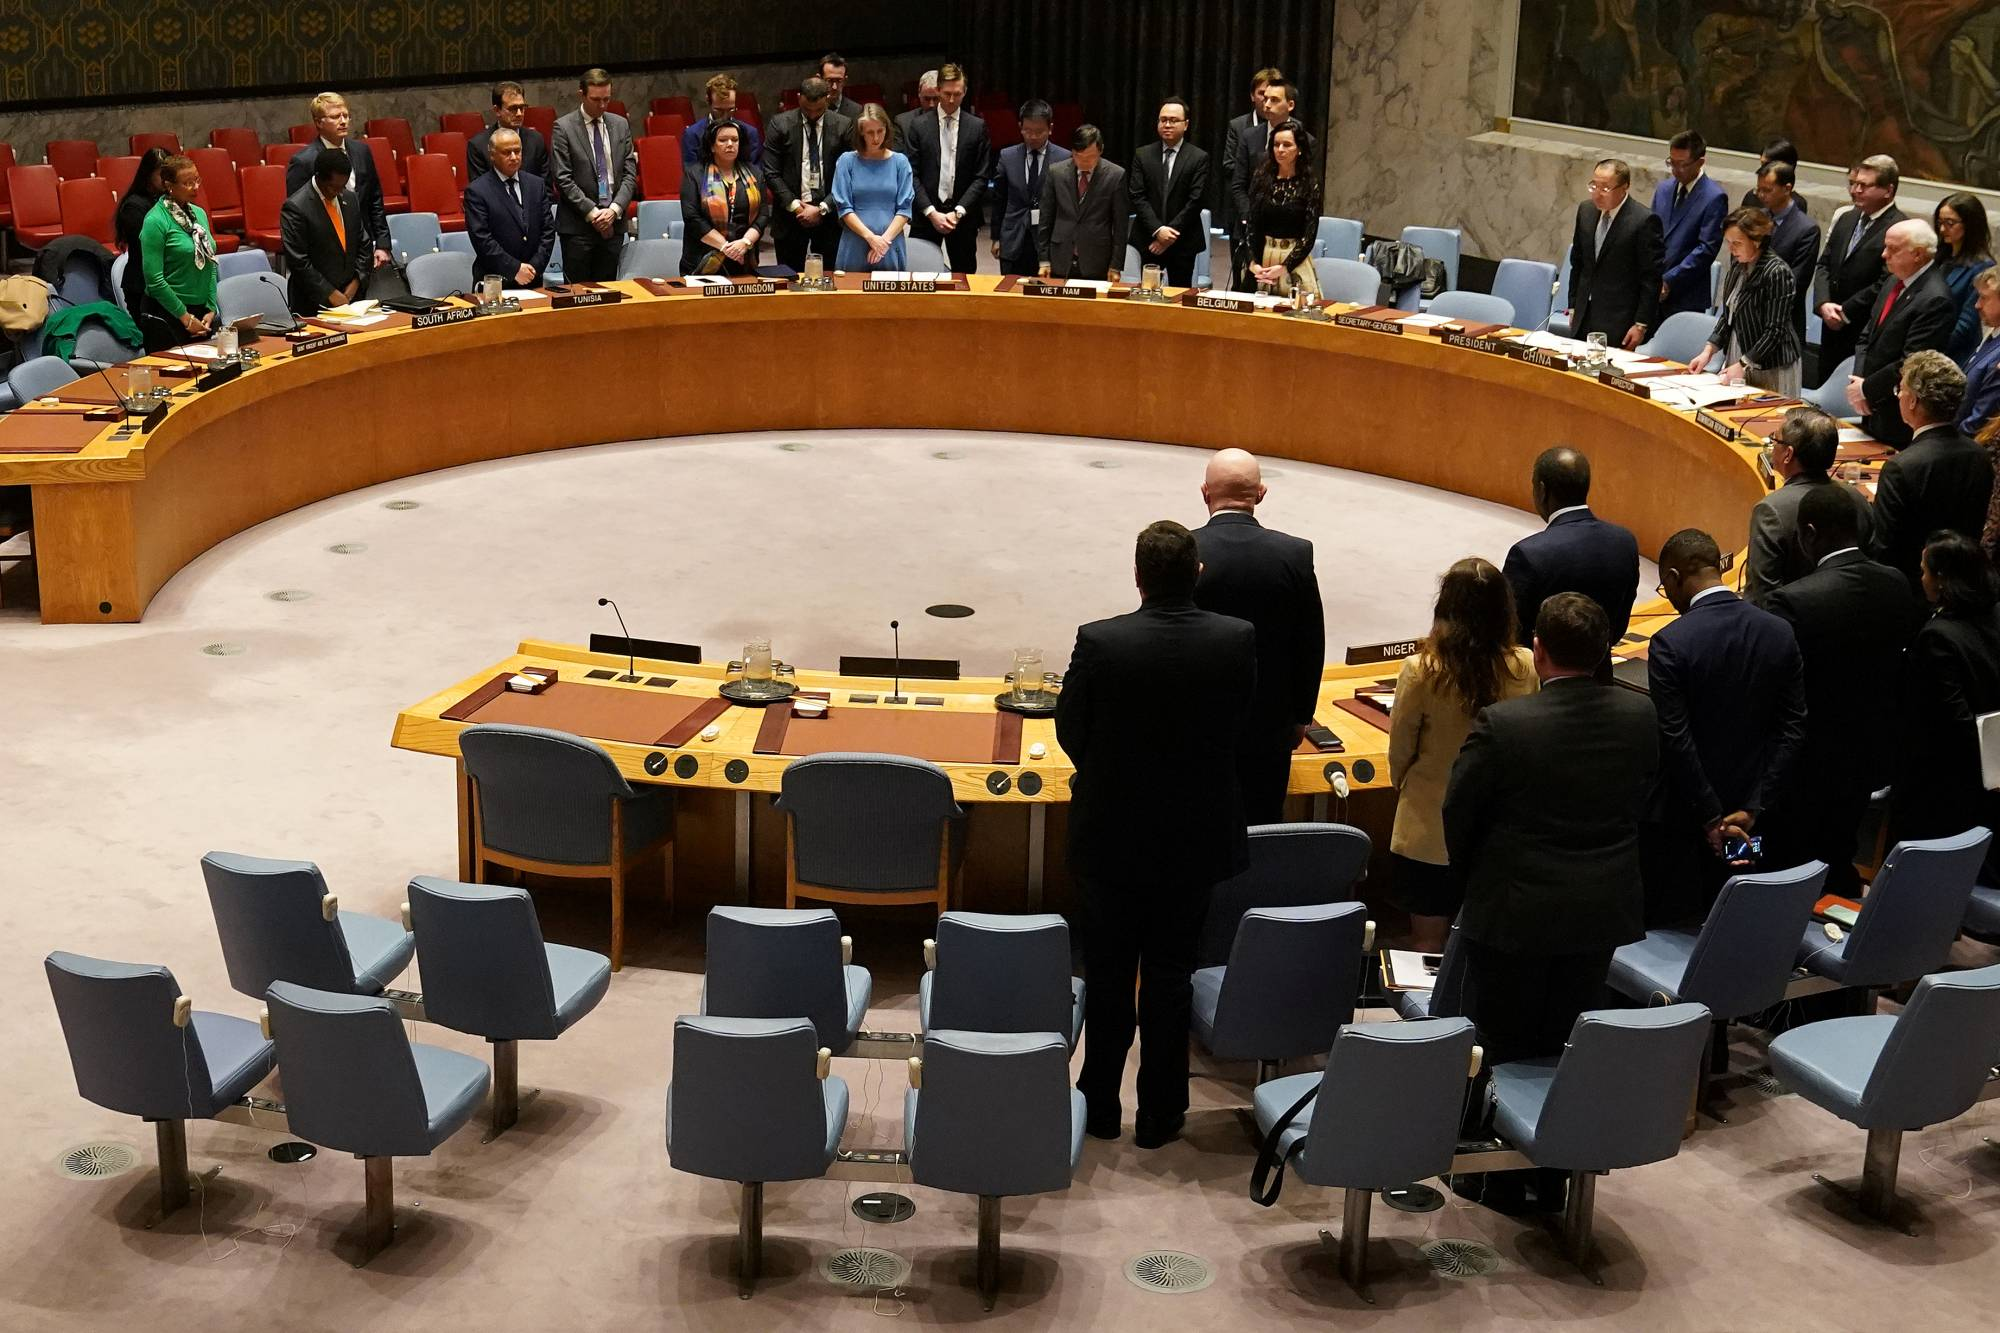 Members of the United Nations Security Council observe a moment of silence at the beginning of a meeting about Afghanistan at United Nations Headquarters in the Manhattan borough of New York City, New York, U.S., March 10, 2020. REUTERS/Carlo Allegri